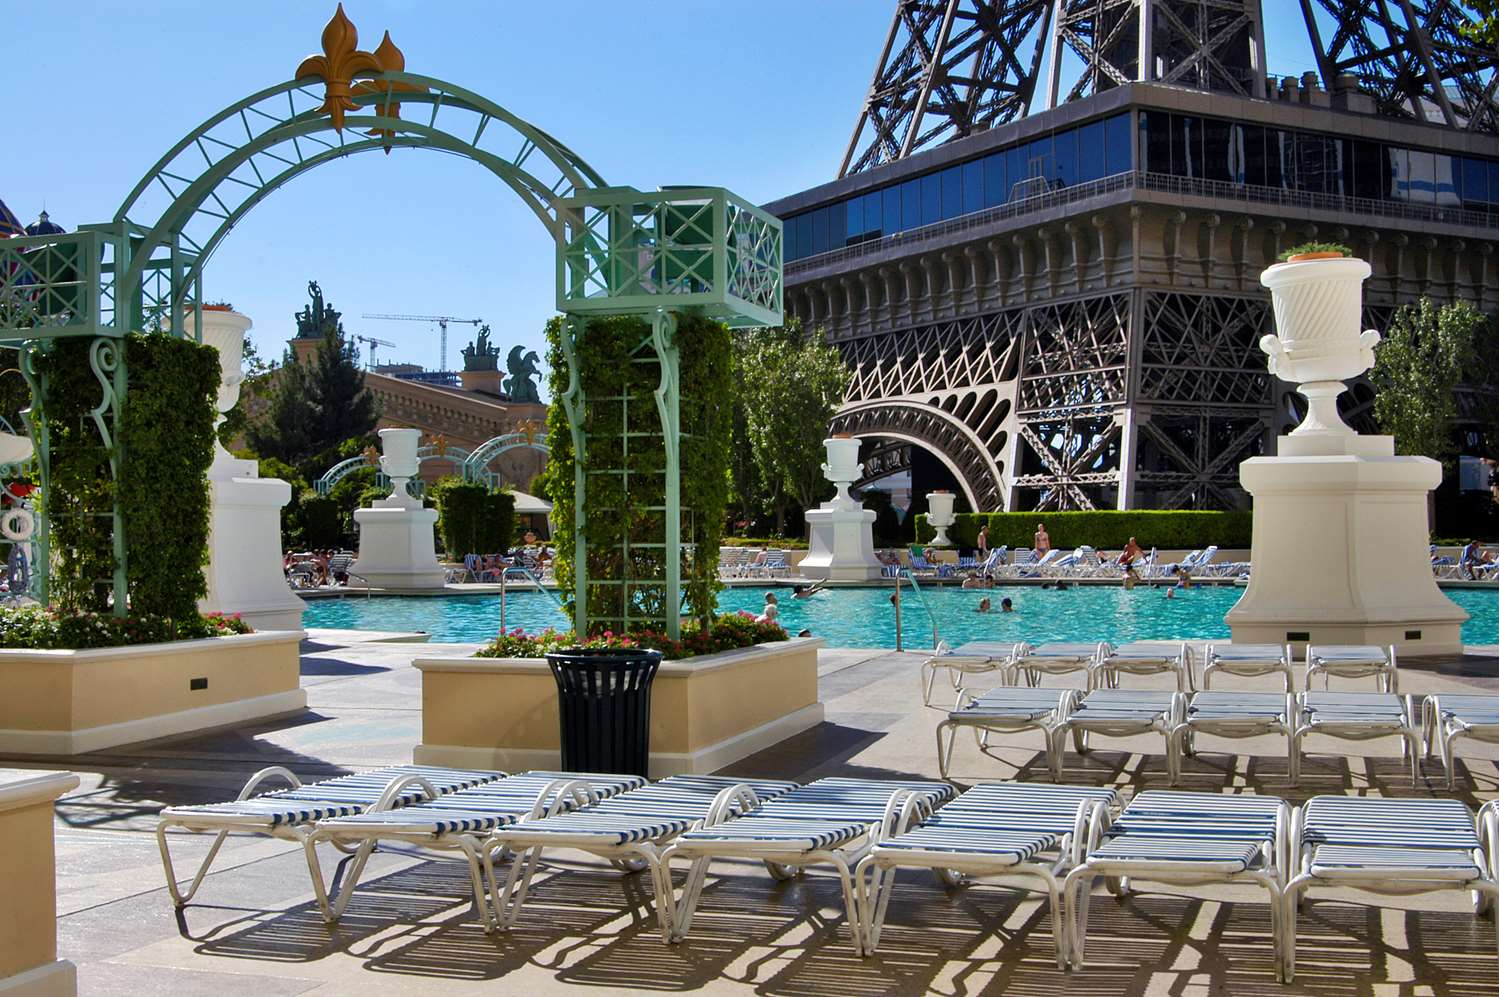 Pool - Paris Resort & Casino Las Vegas